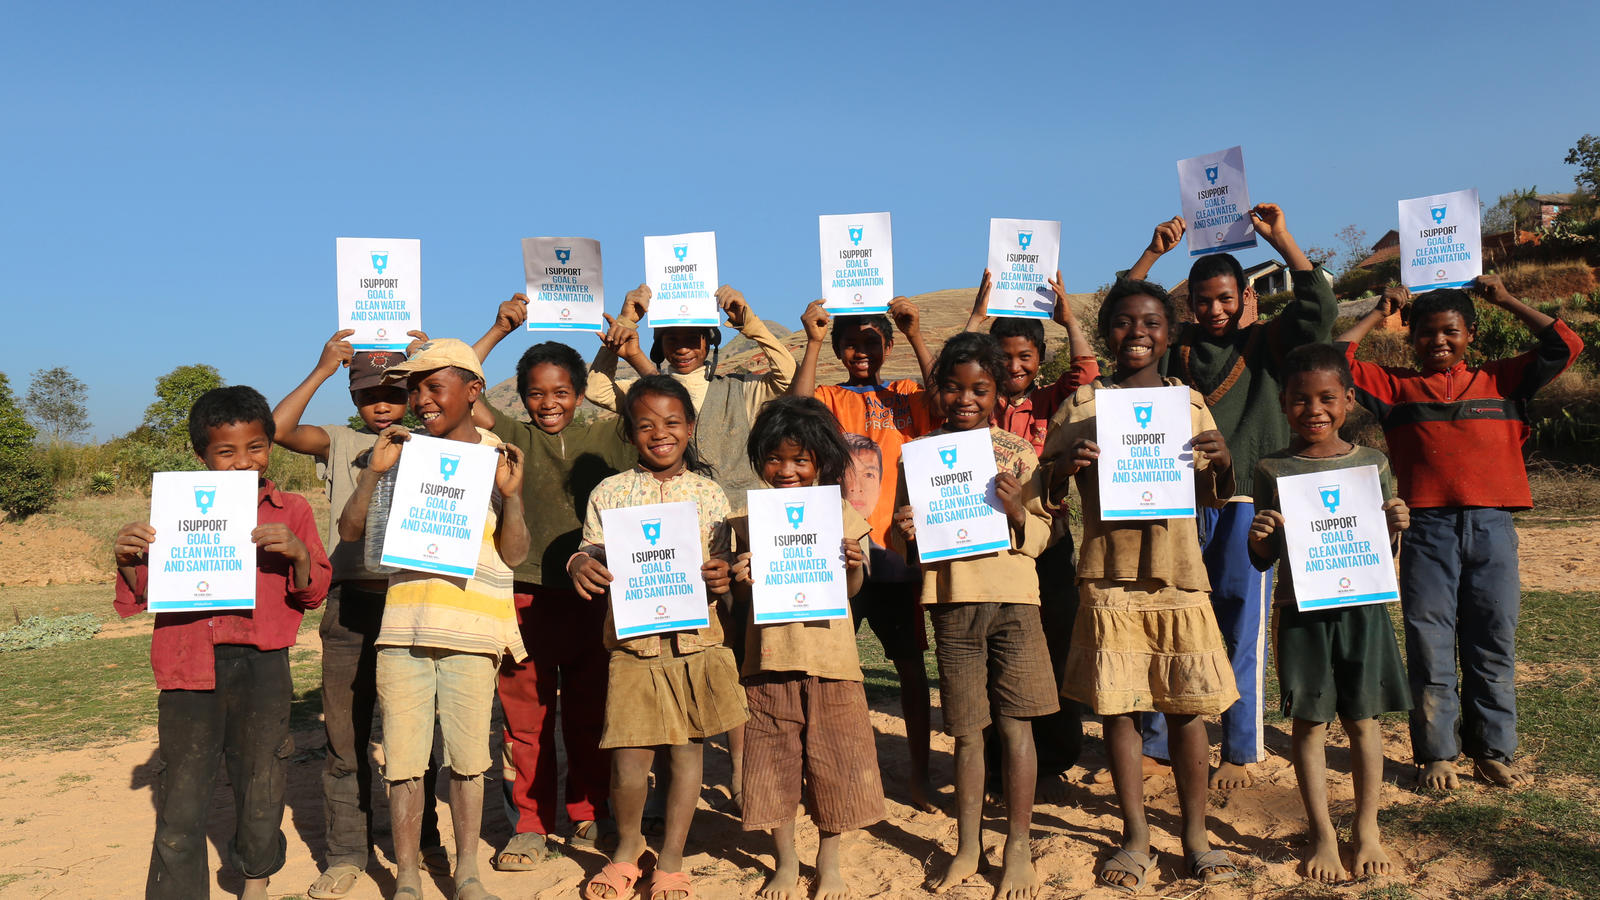 A group of children from Ampilanonana village supporting Global Goal six 'Clean water and sanitation'. Ampilanonana commune, Betafo district, Vakinankaratra region, Madagascar. September 2015.